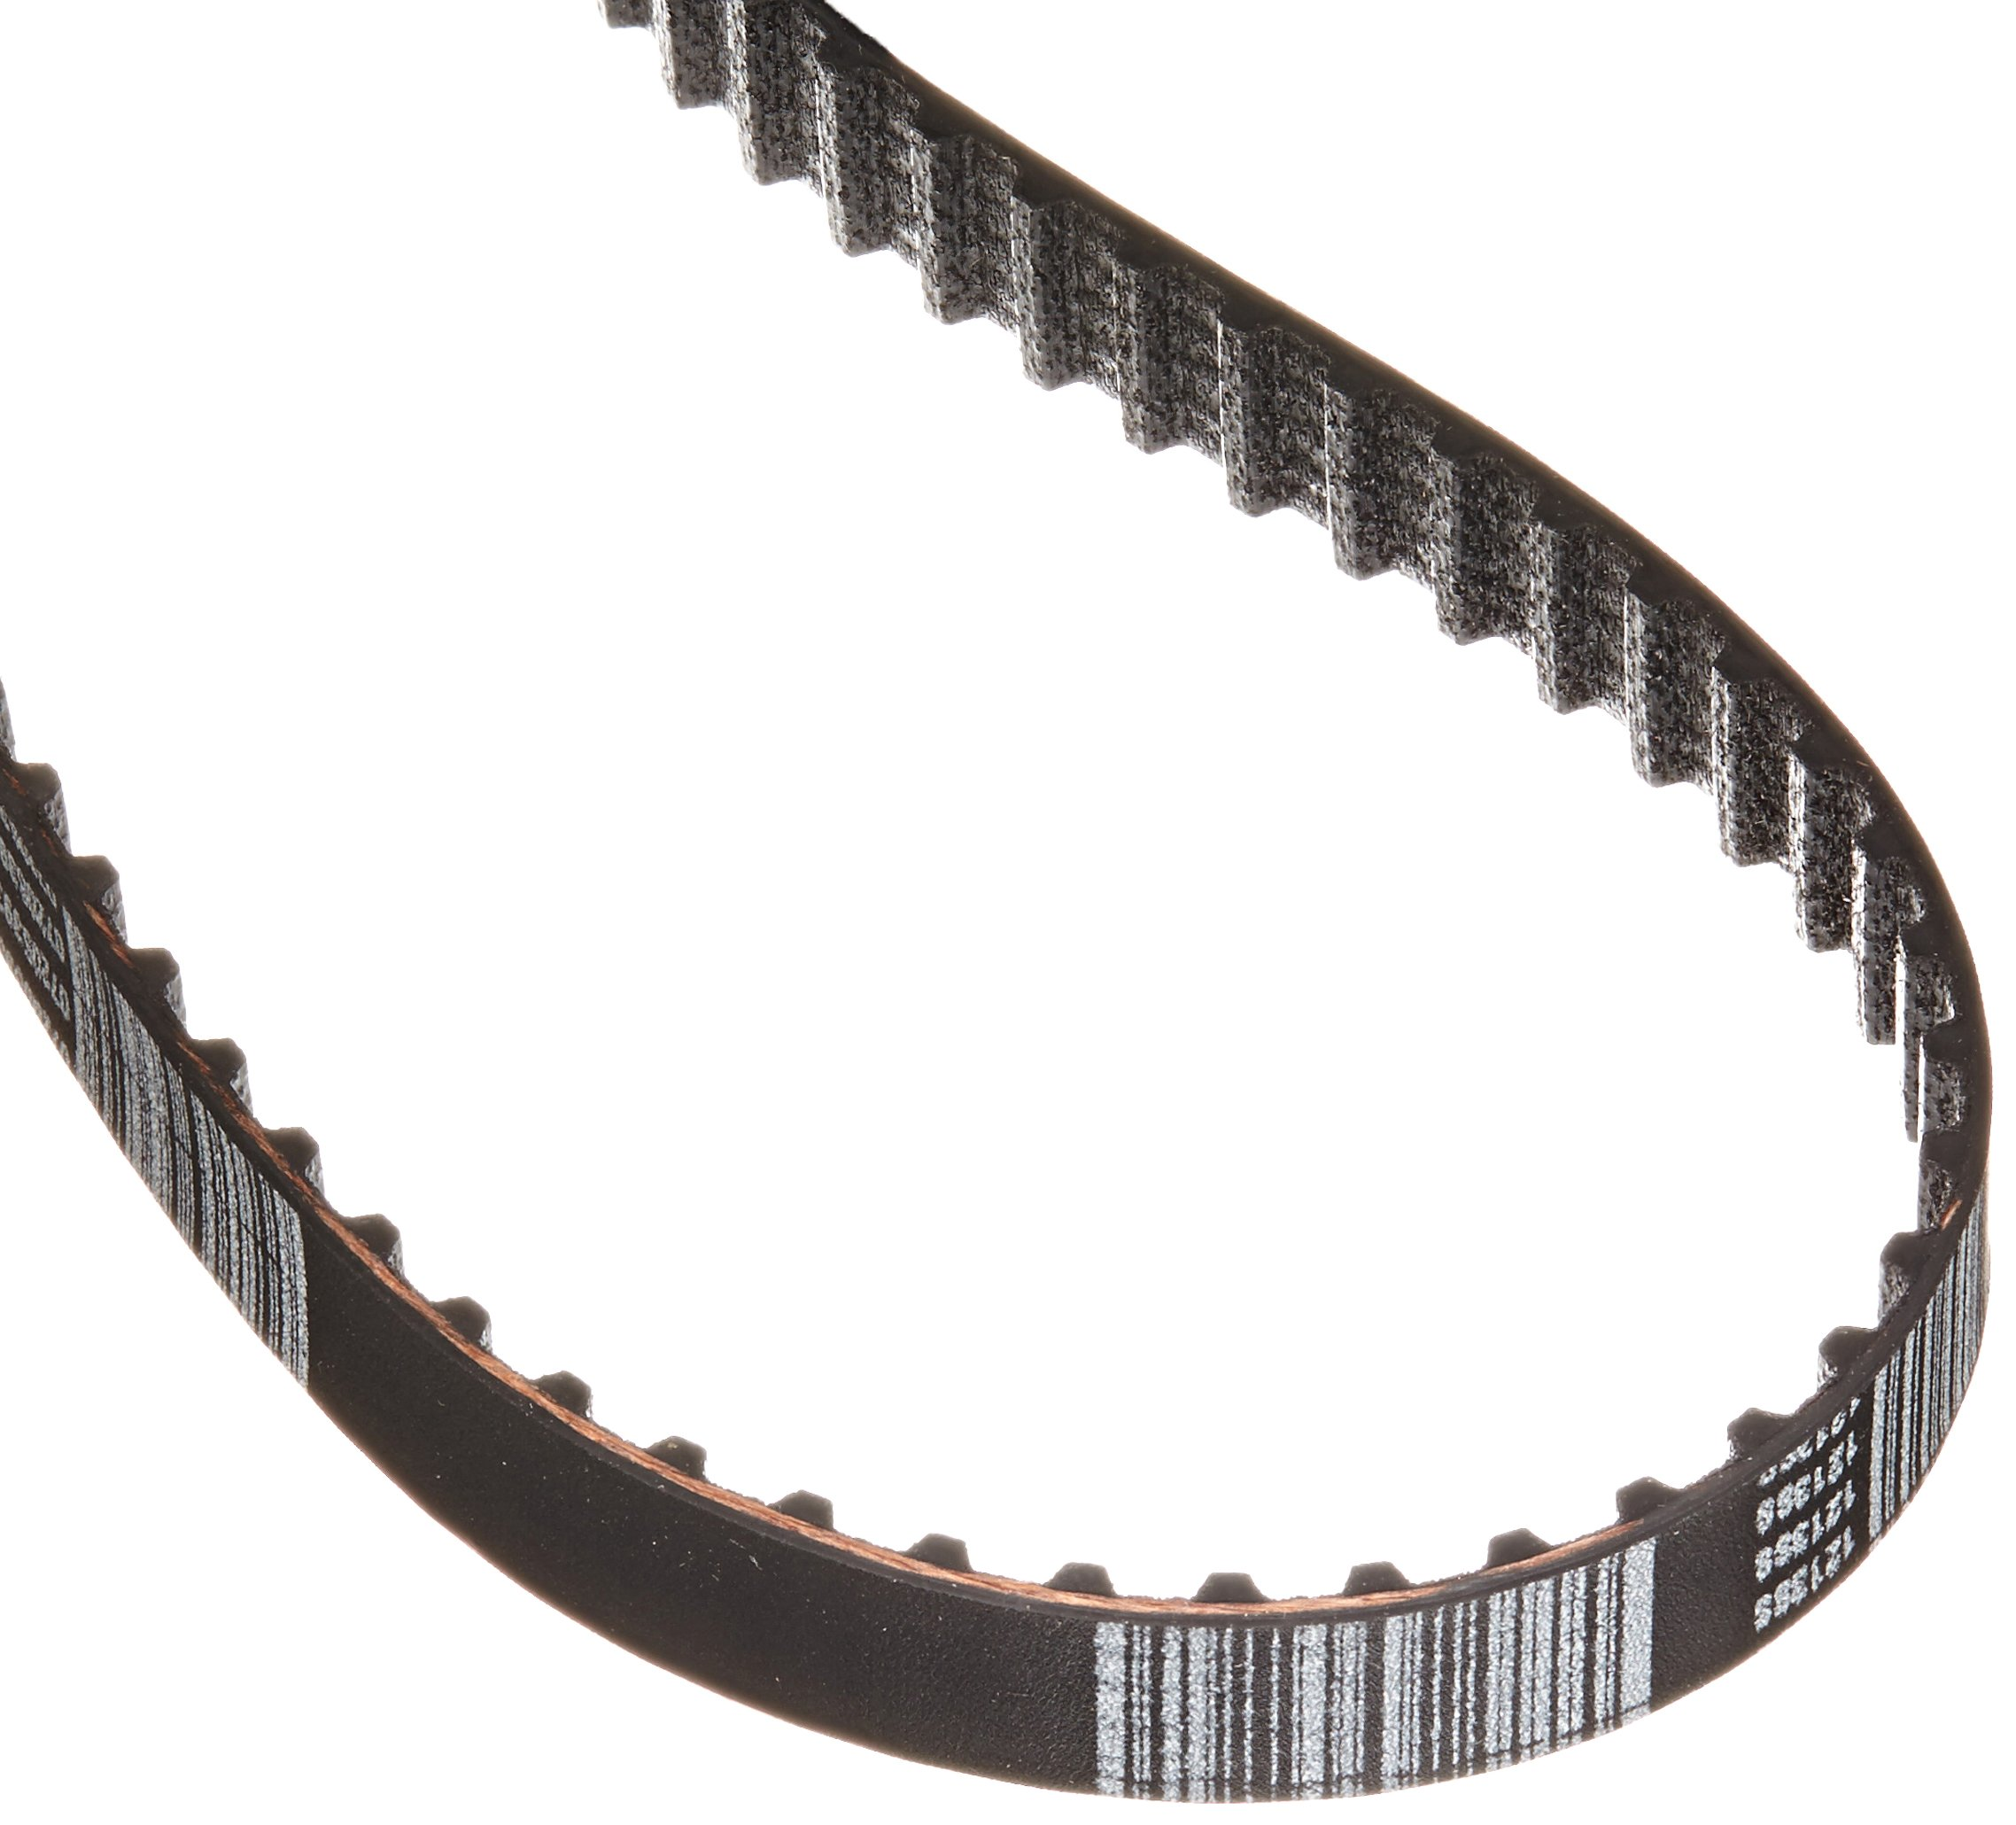 "Gates 142XL037 PowerGrip Timing Belt, Extra Light, 1/5"" Pitch, 3/8"" Width, 71 Teeth, 14.20"" Pitch Length"